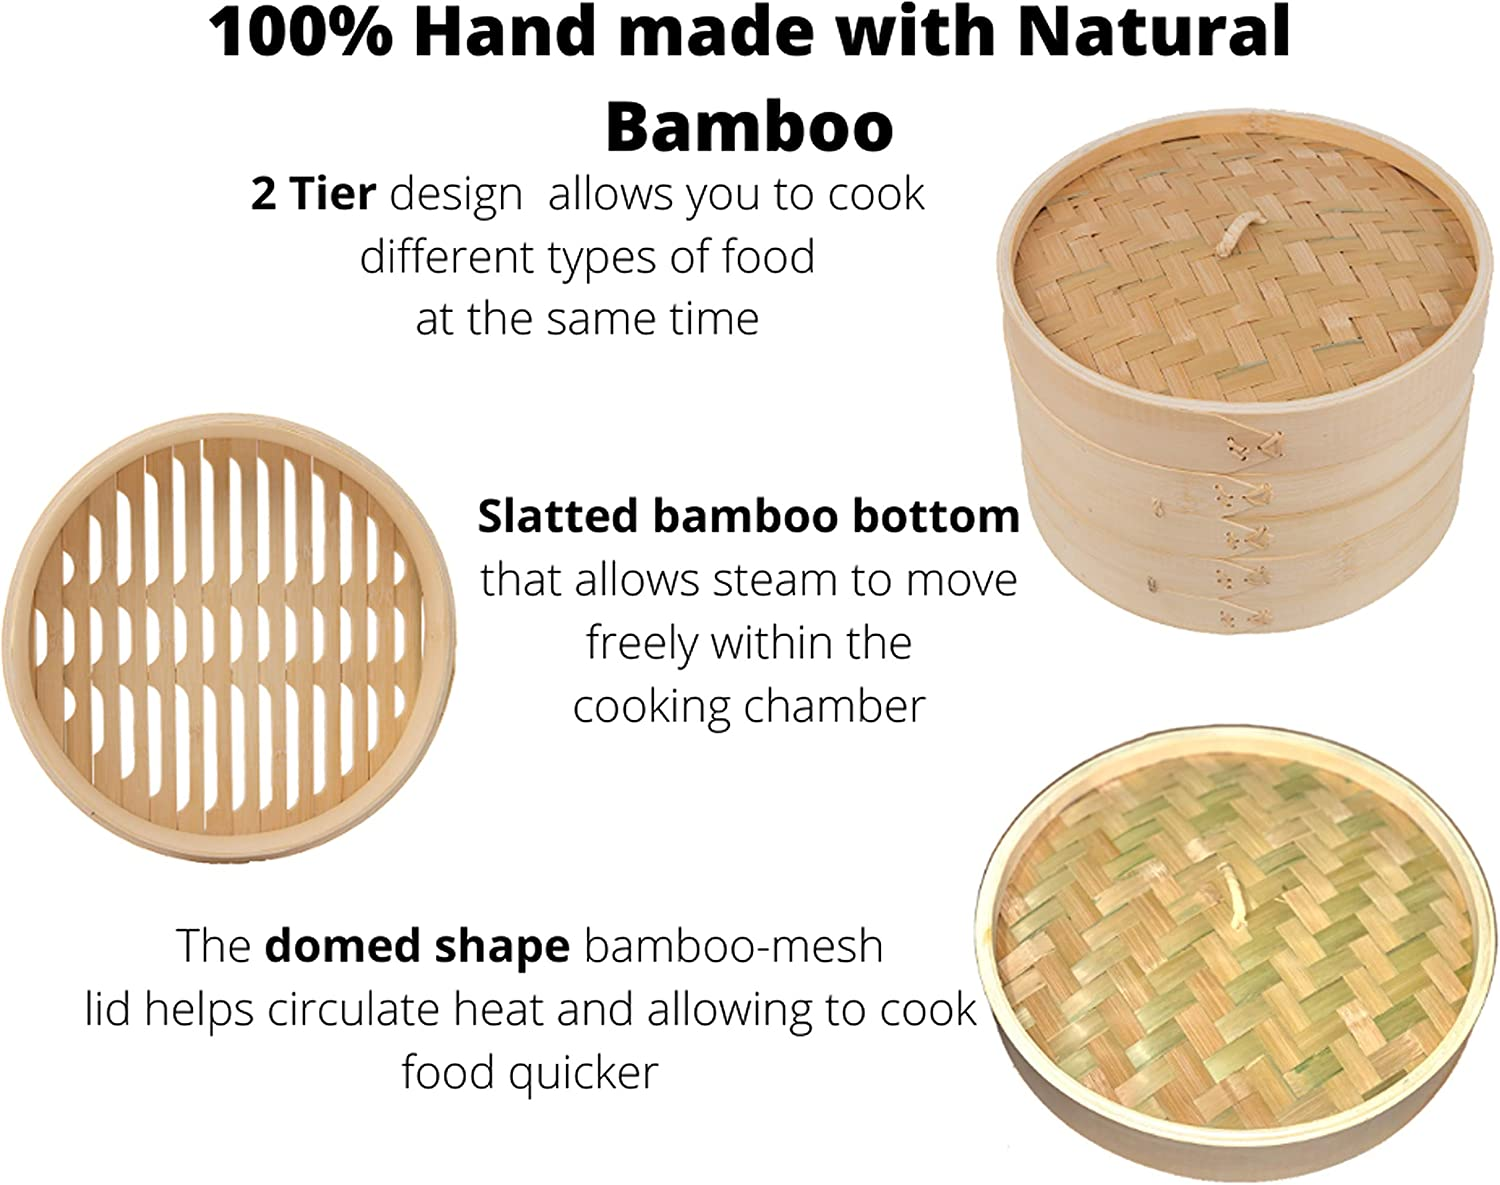 Buns Dumpling Bamboo Steamer Basket 10 Inch-100/% Hand made with natural Bamboo Material-2 Tier Bamboo steamer-Healthy cooking for Vegetable Included 10 pcs liner papers Fish Chicken meat and more